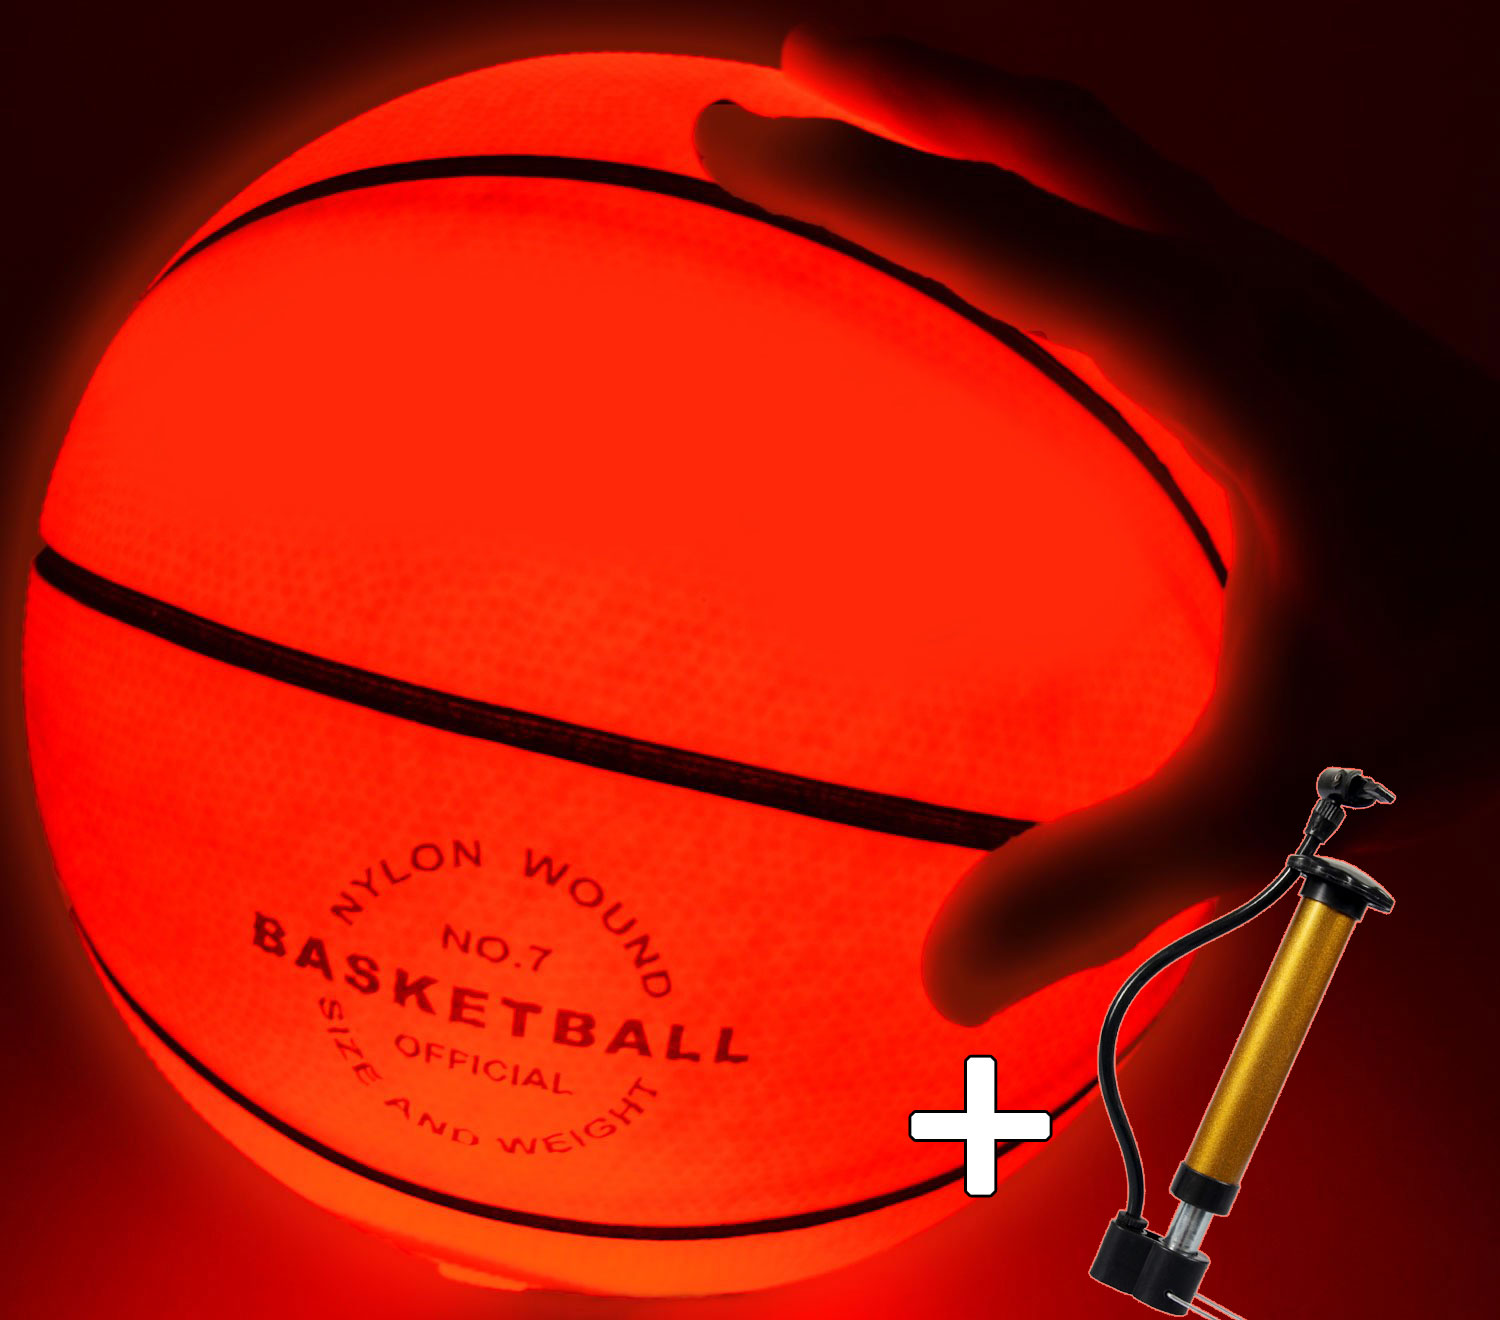 Light Up Basketball-Uses Two High Bright LED's